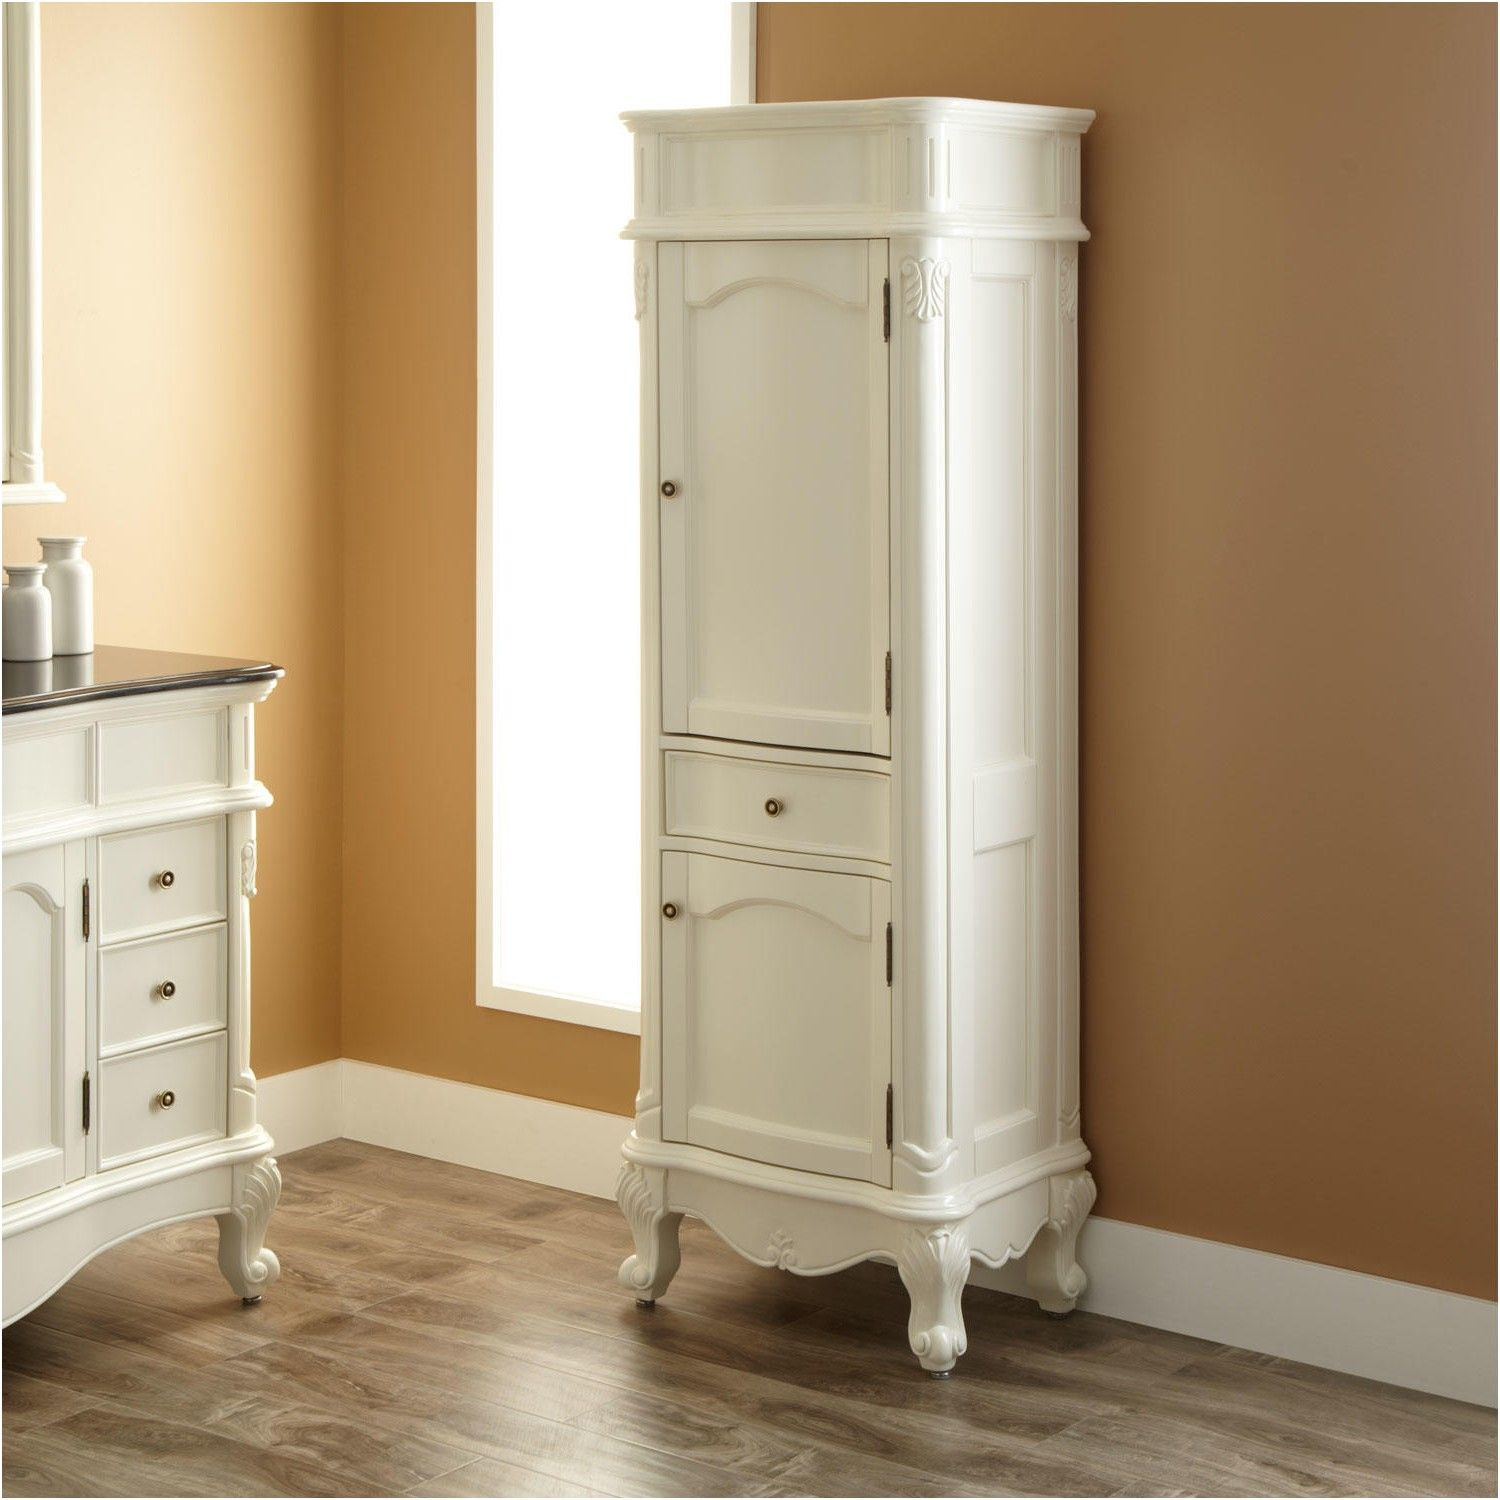 Target Medicine Cabinet Custom Interesting Bathroom Cabinets Tar Storage E On Inspiration From Inspiration Design